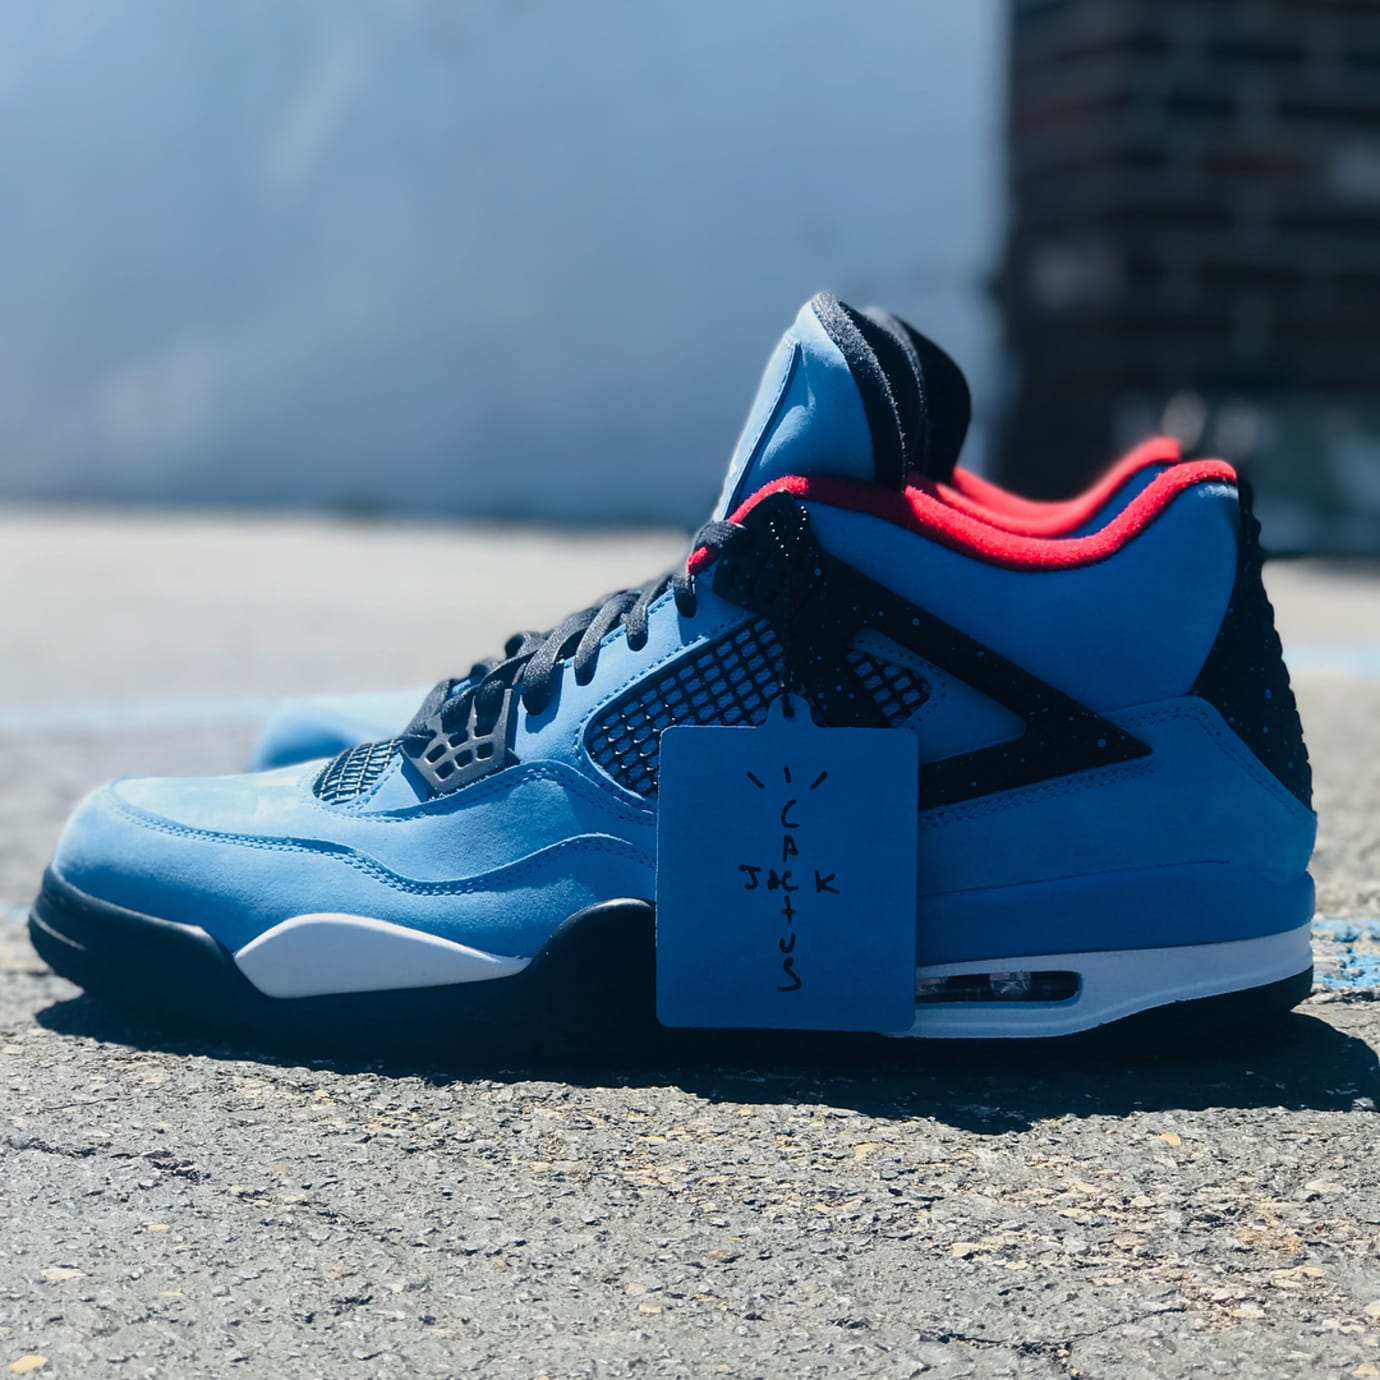 Travis Scott x Air Jordan 4 Oiler Release Date 308497-406 Beauty Profile